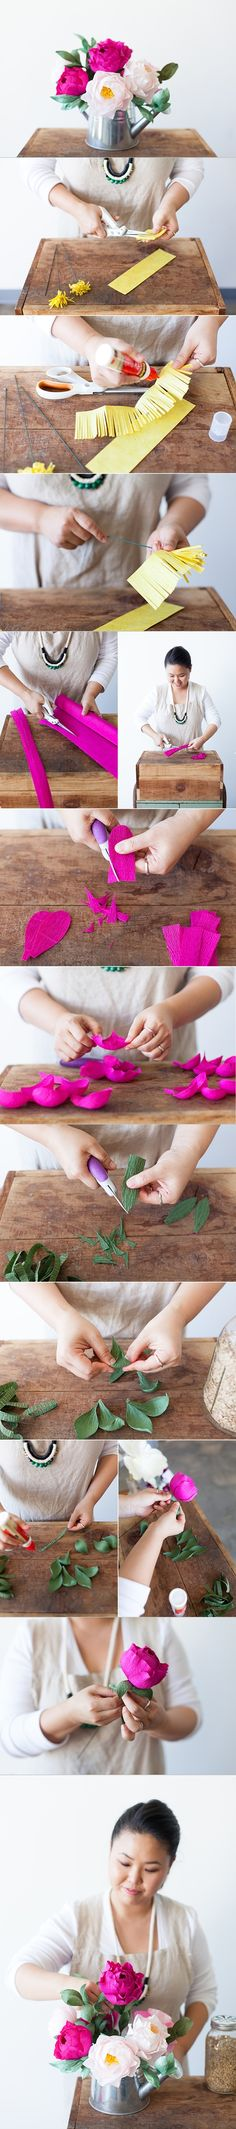 DIY Crepe Paper Peony Bouquet | www.FabArtDIY.com LIKE Us on Facebook ==> https://www.facebook.com/FabArtDIY